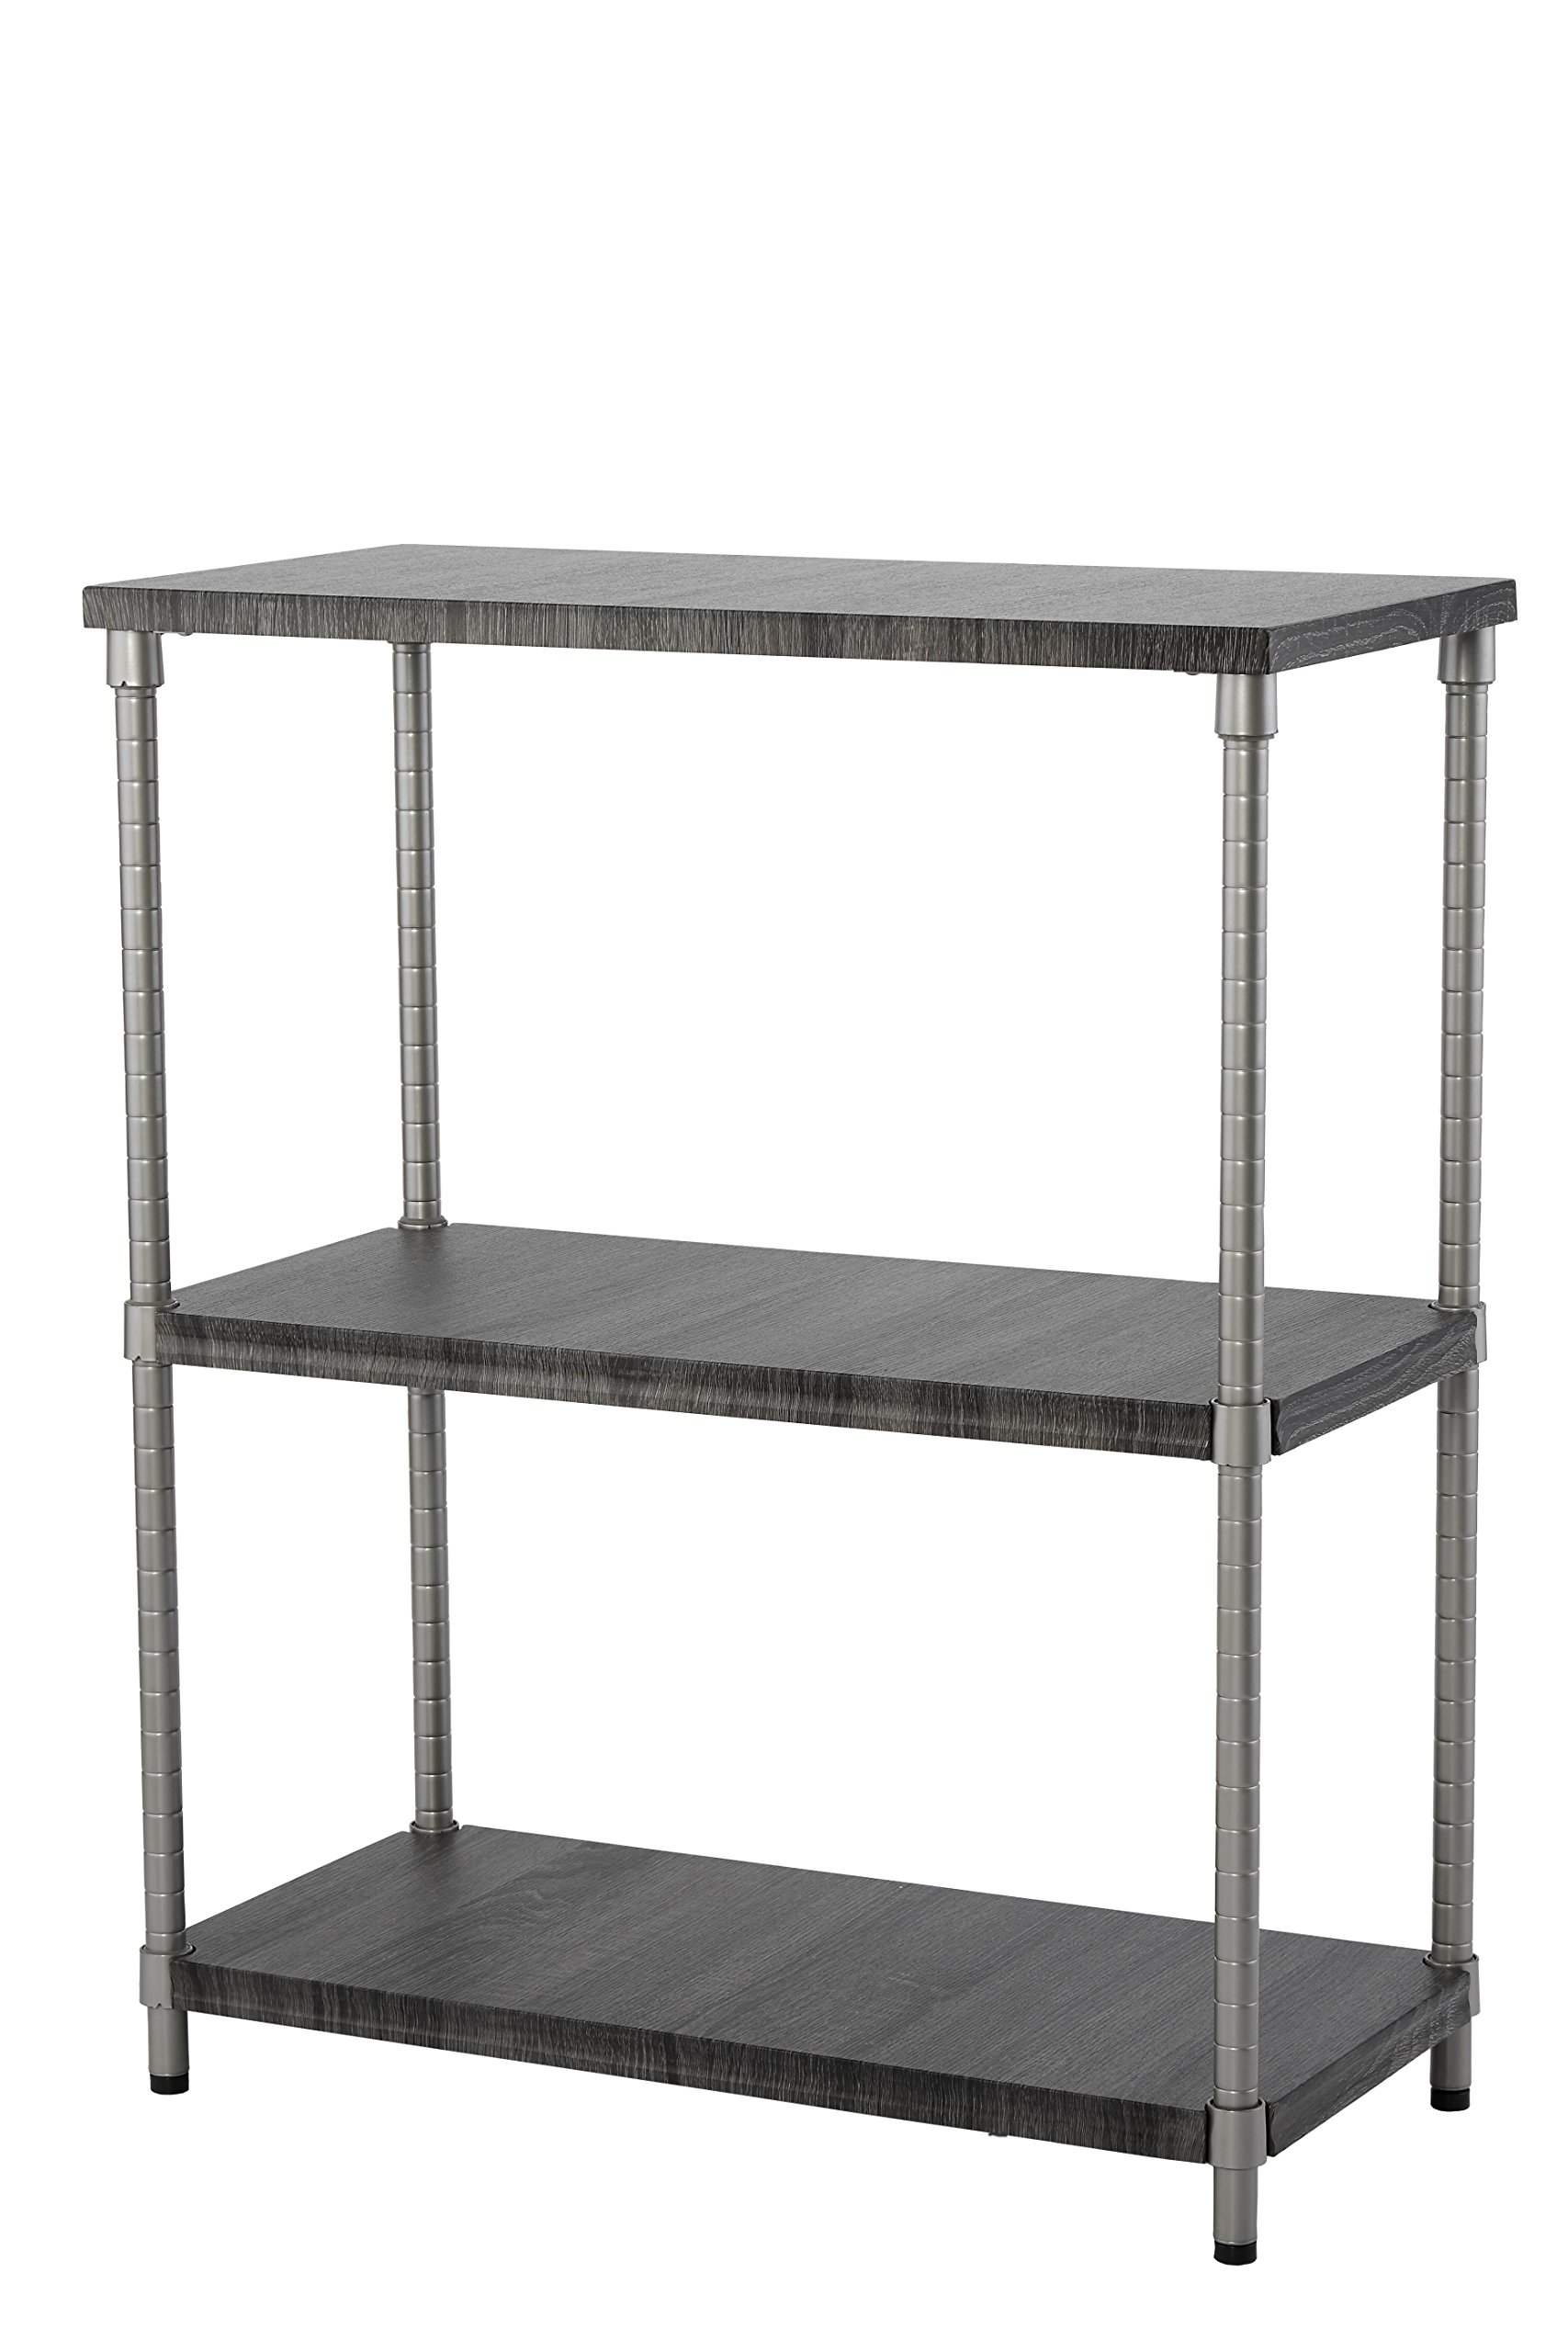 Home Zone Bookcase Storage Rack with 3-Tier Wide Shelving Unit | | Steel and Wood with Satin Nickel Finish,